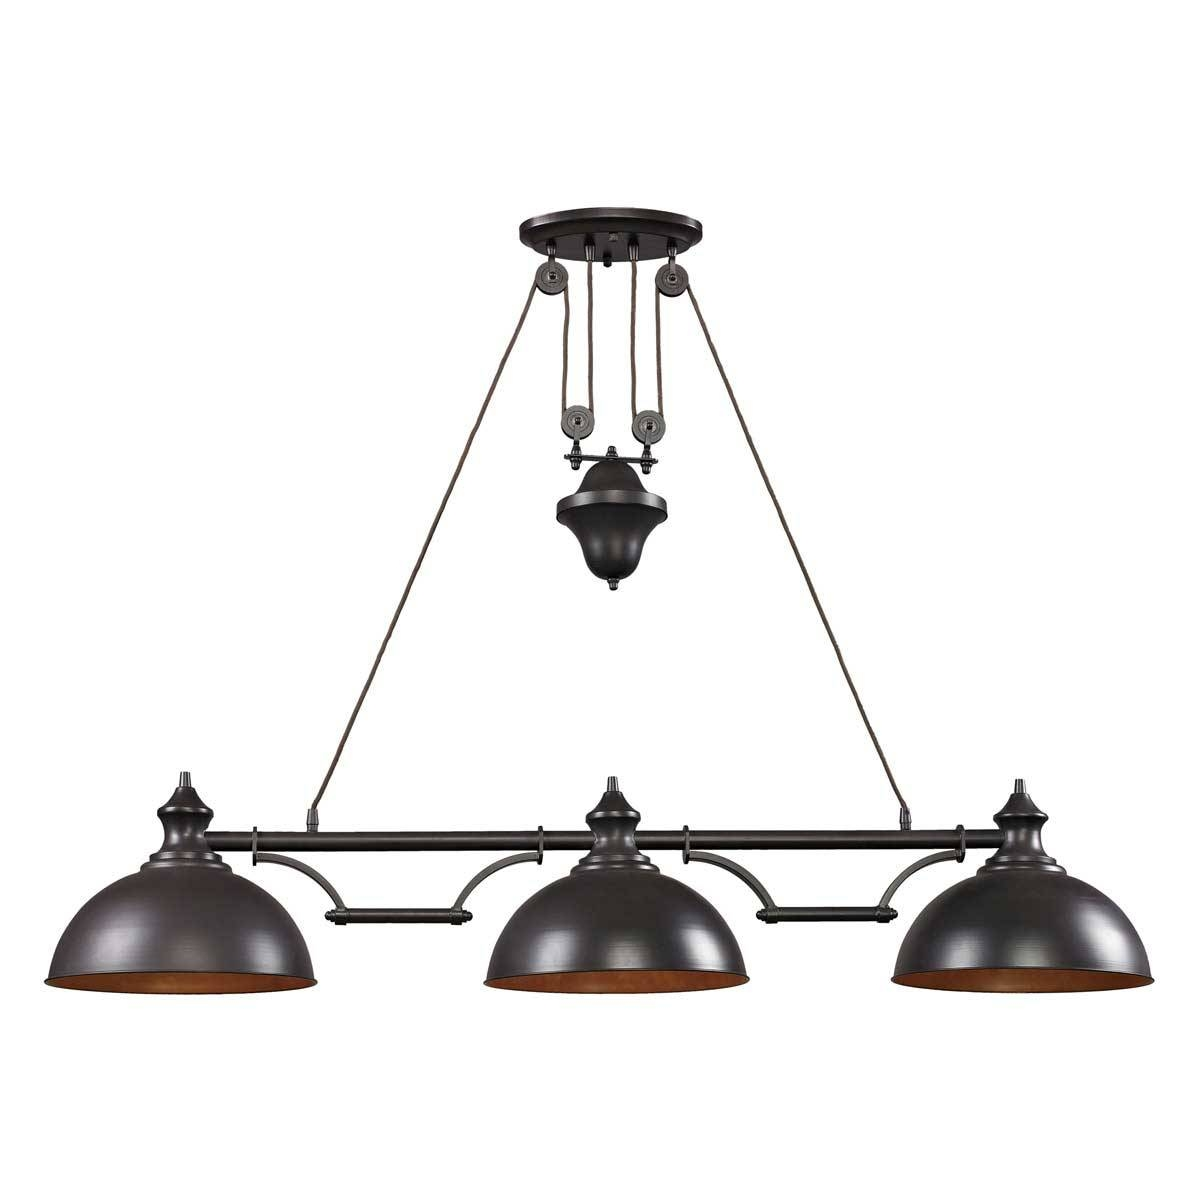 Inspirational Pulley Pendant Light Fixtures 48 For Your Pendant with regard to Pulley Pendant Lights (Image 10 of 15)